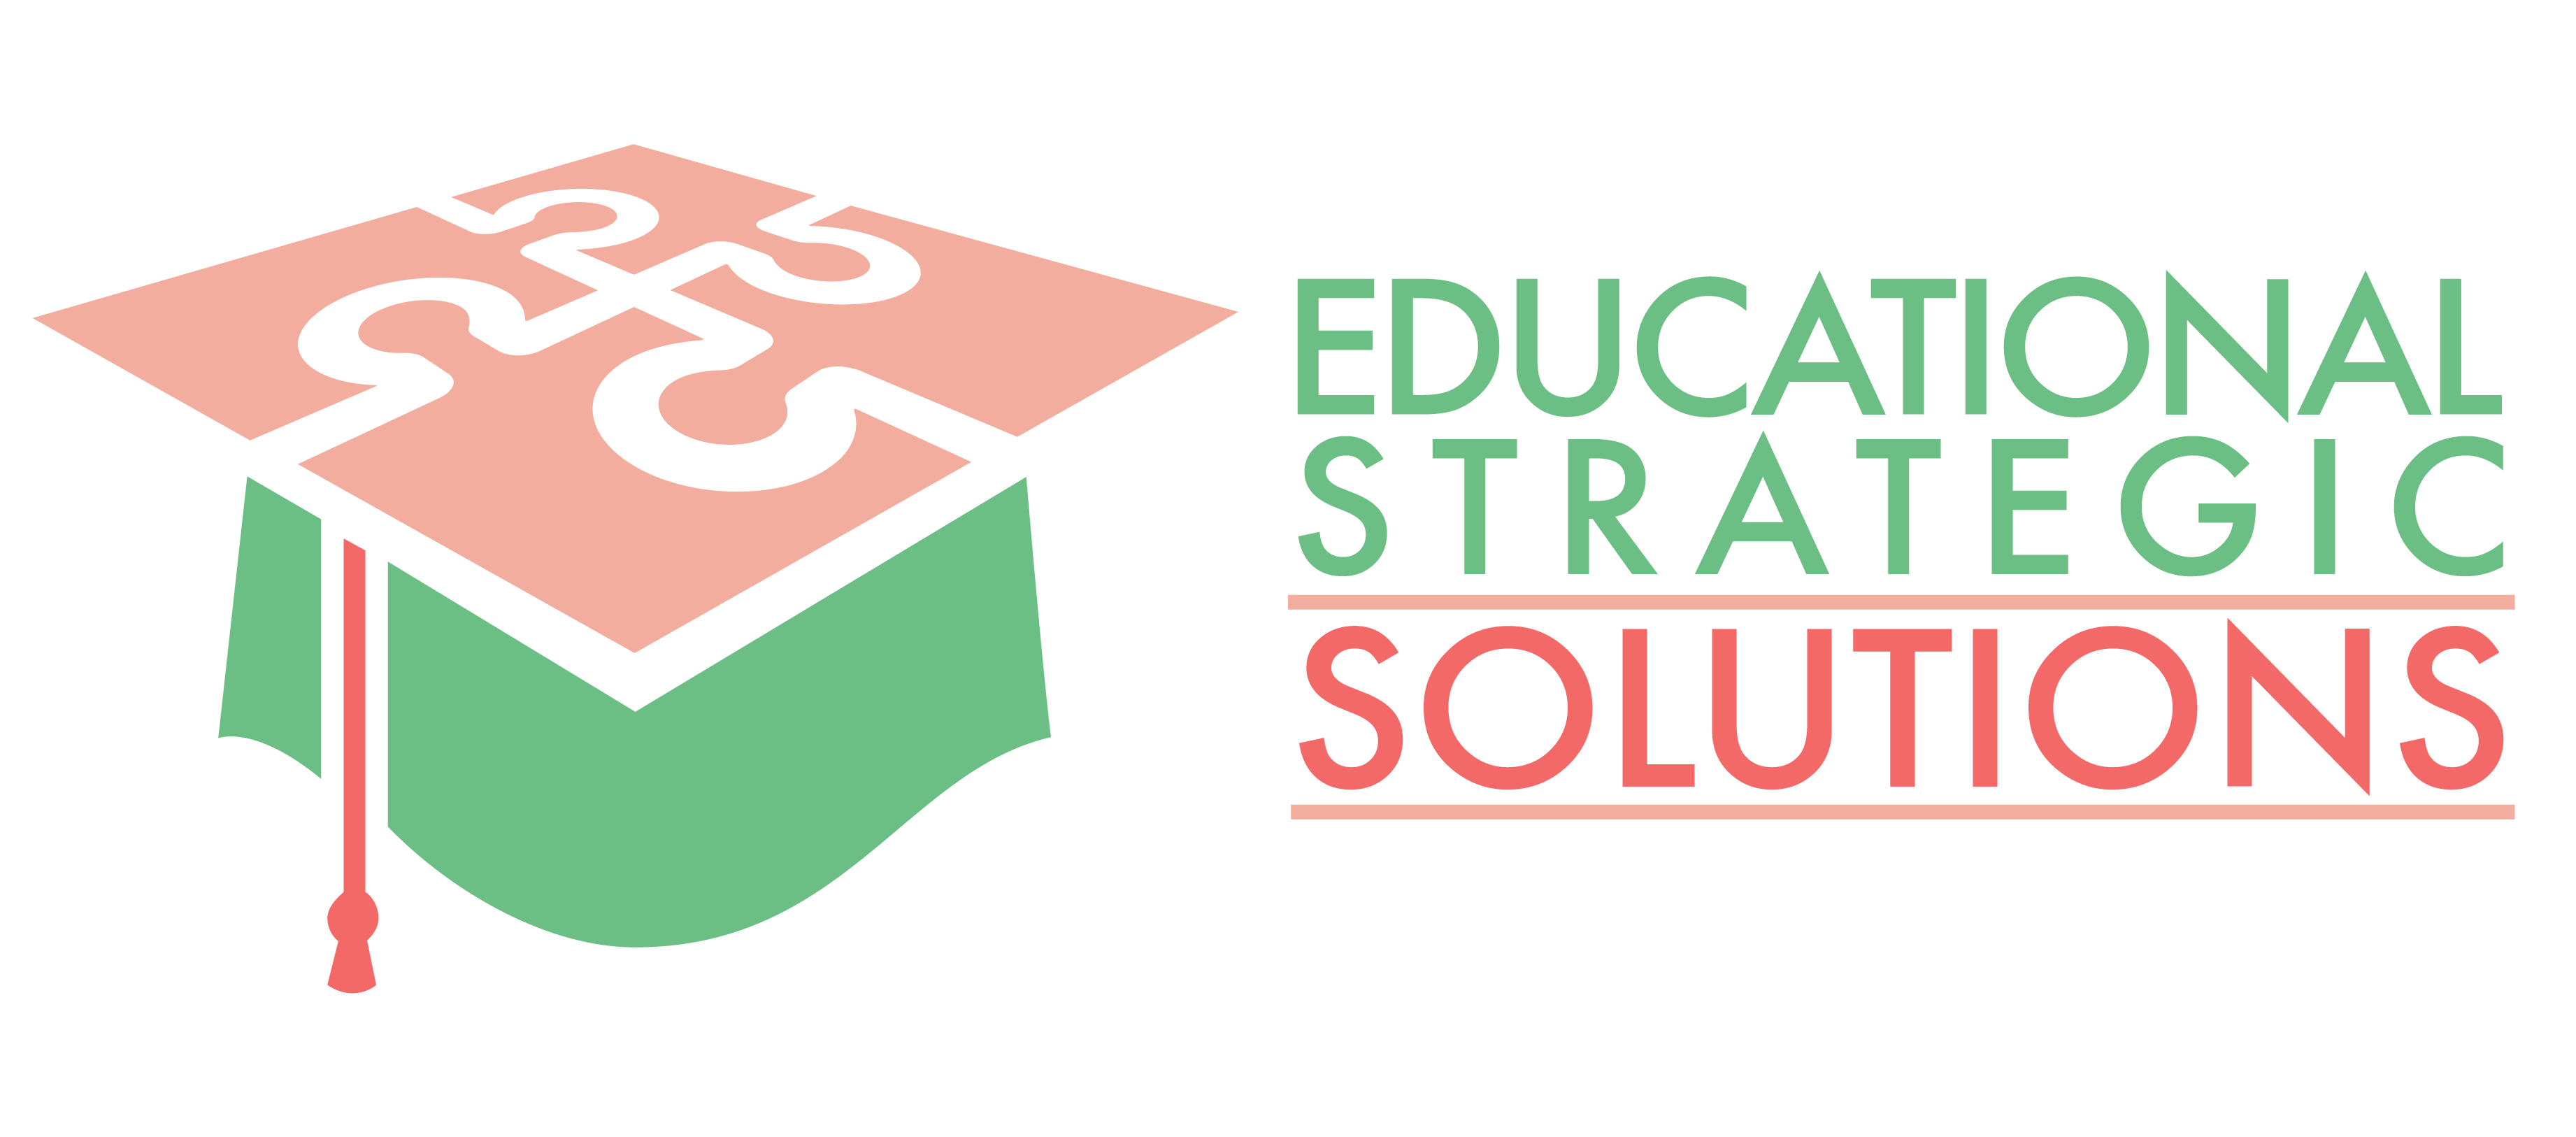 Educational Strategic Solutions